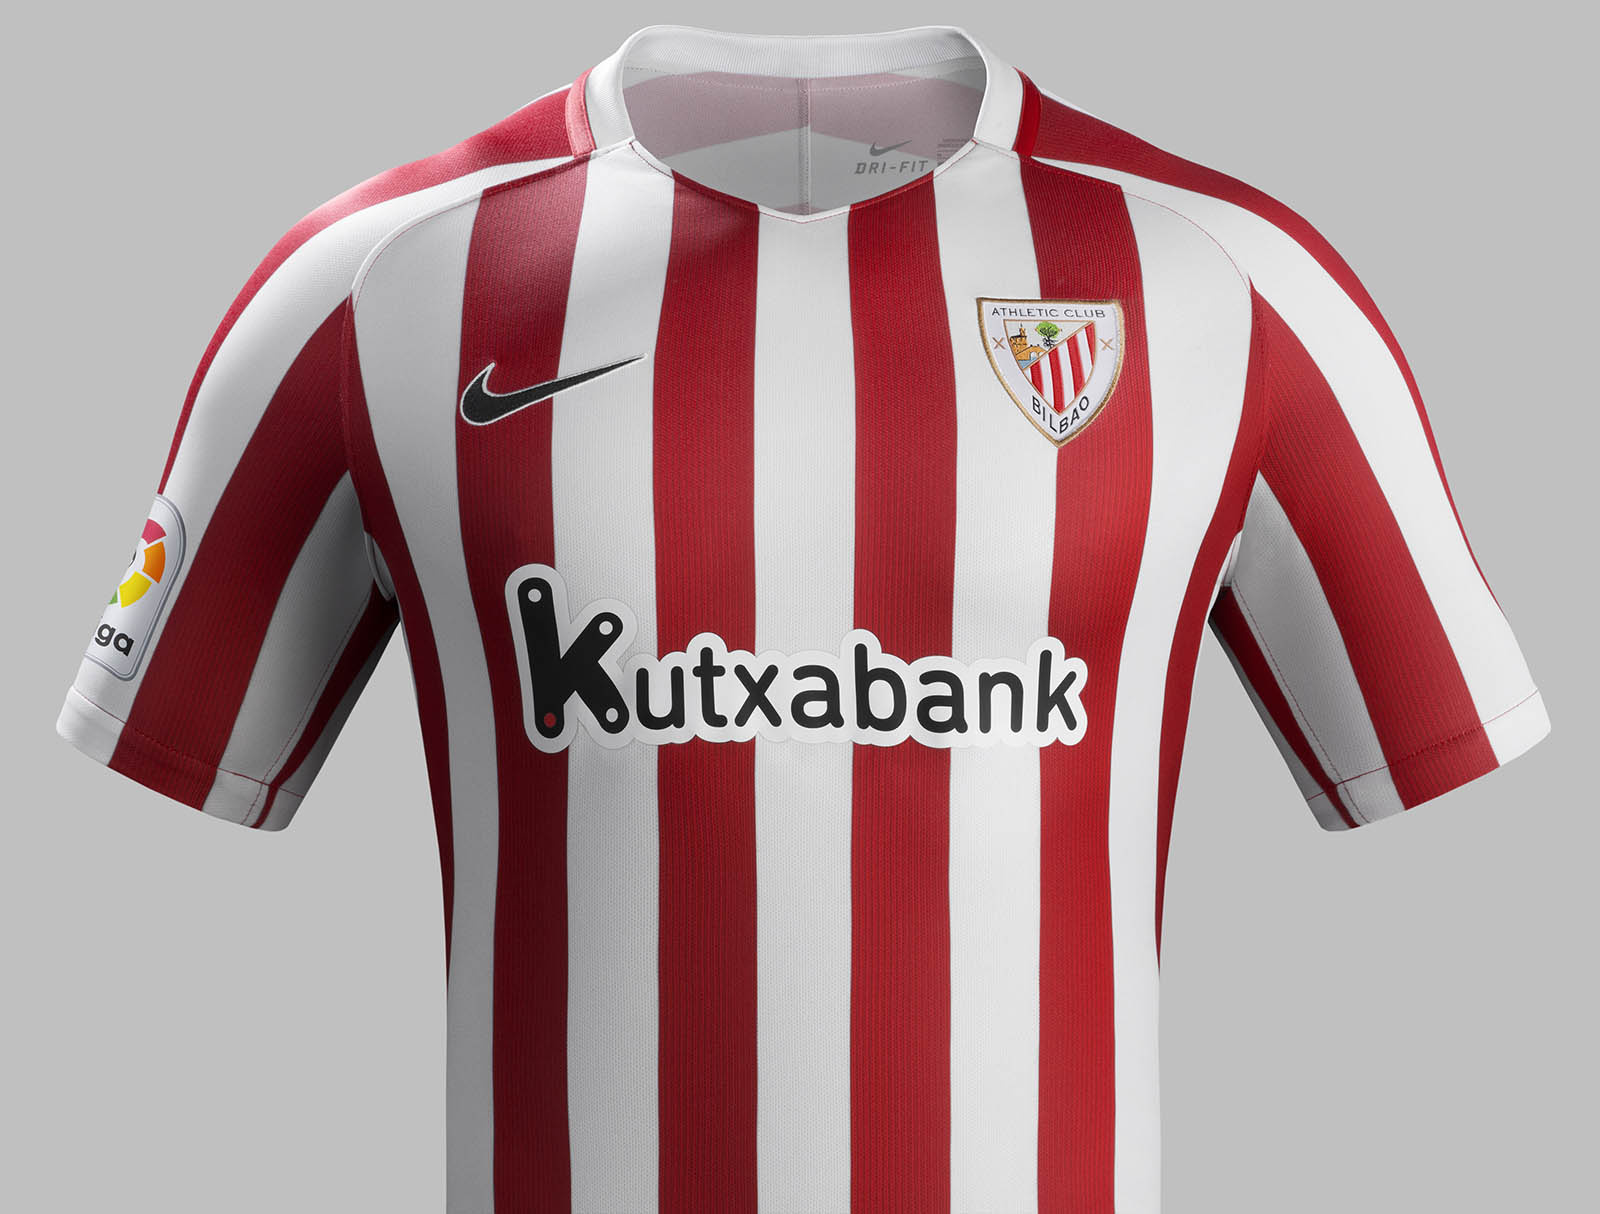 bilbao-16-17-home-kit%2B%25282%2529.jpg